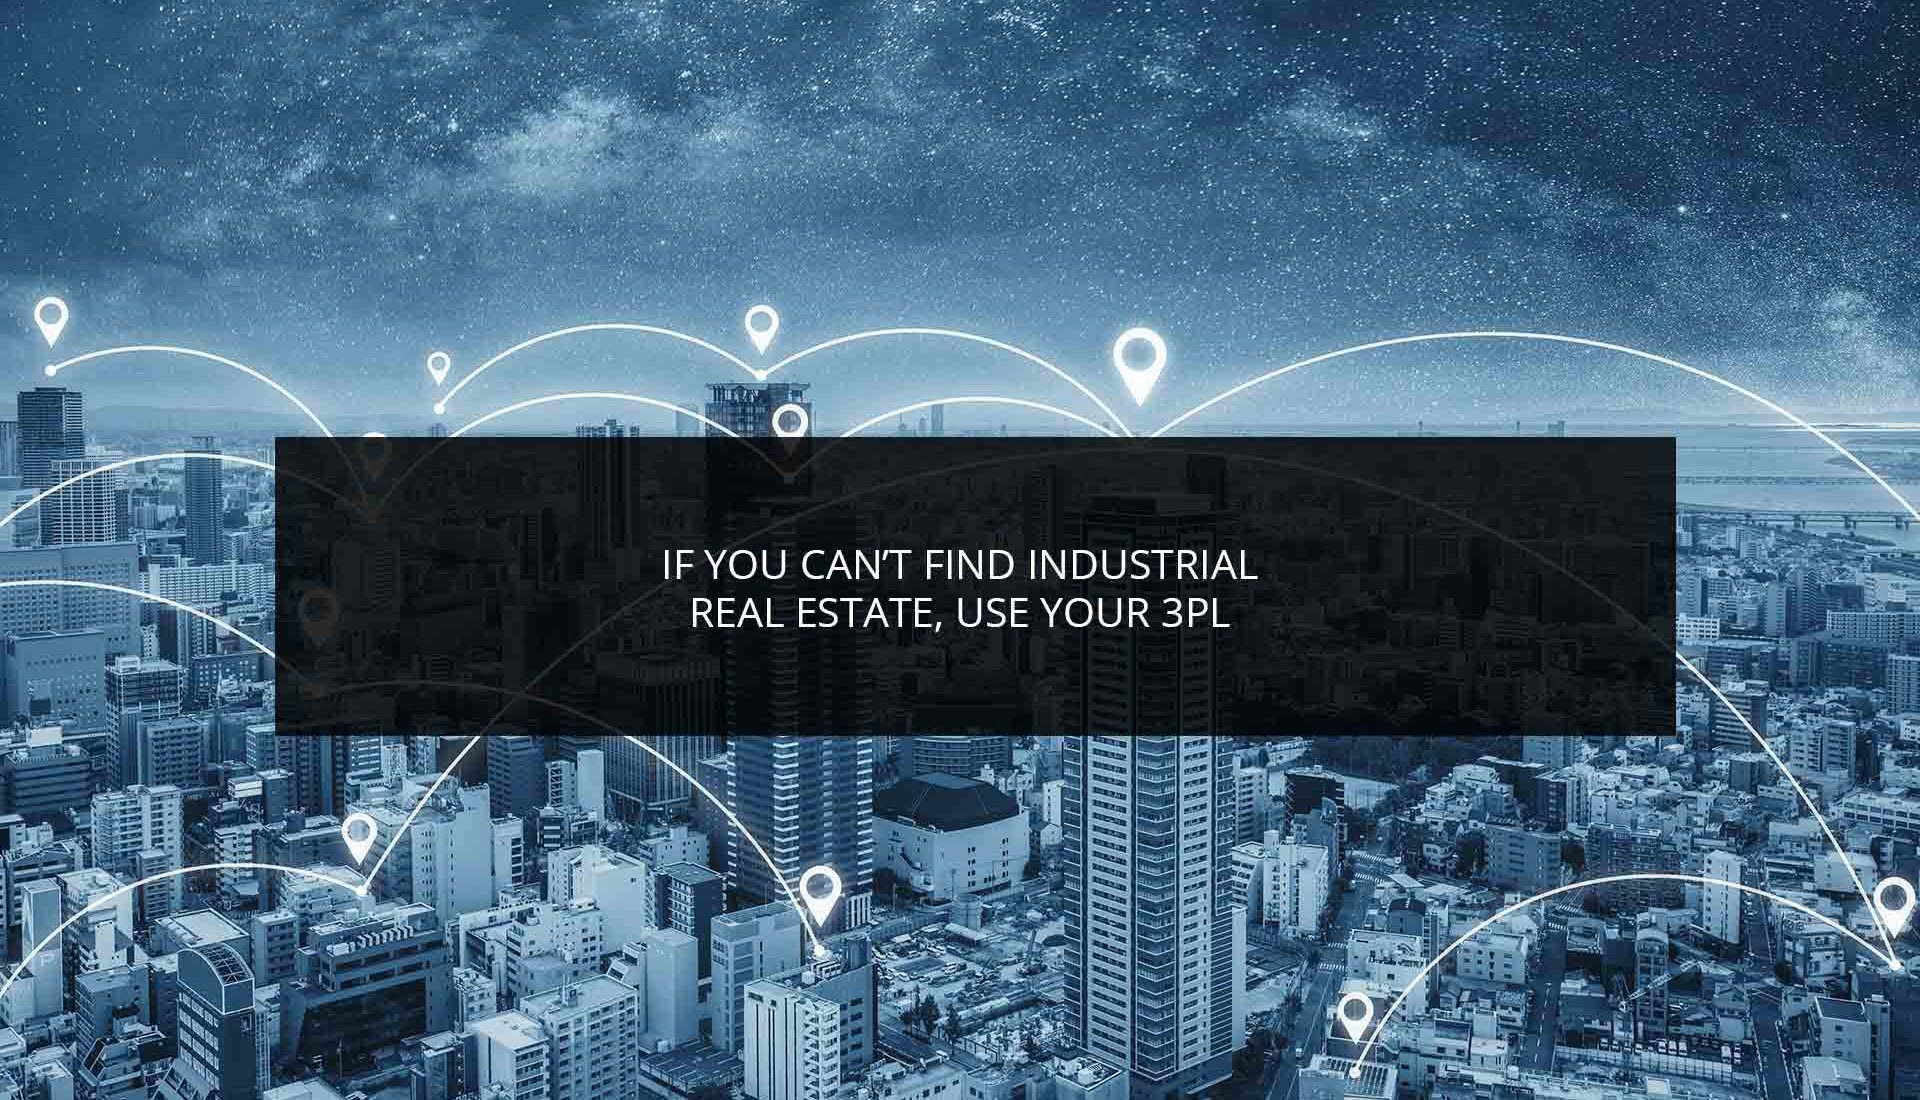 If You Can't Find Industrial Real Estate Use Your 3PL